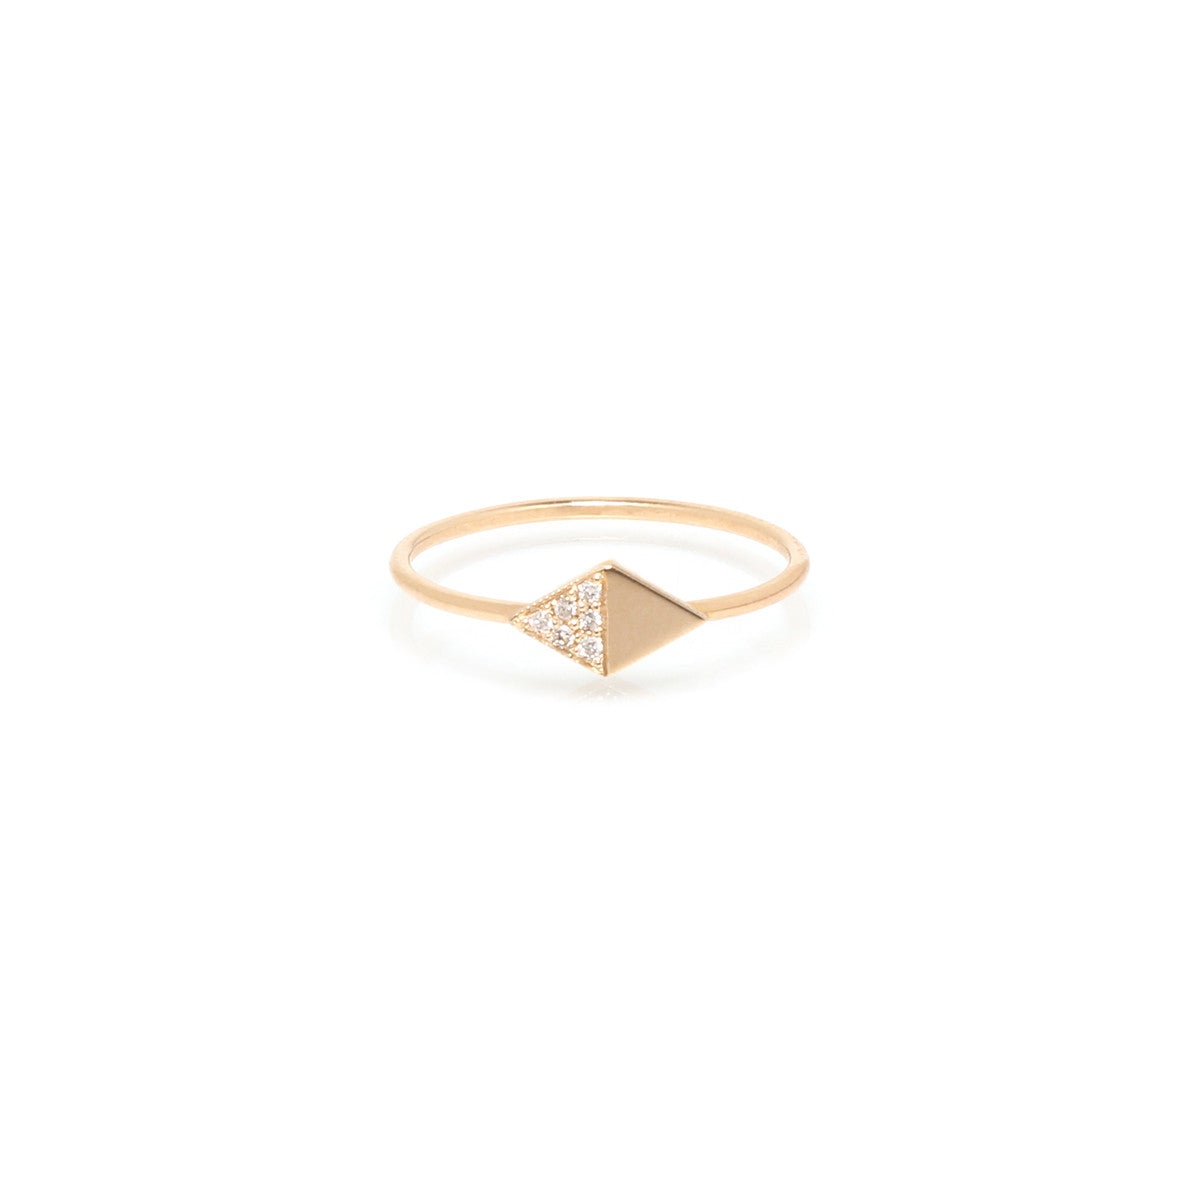 14k half pave diamond shaped ring